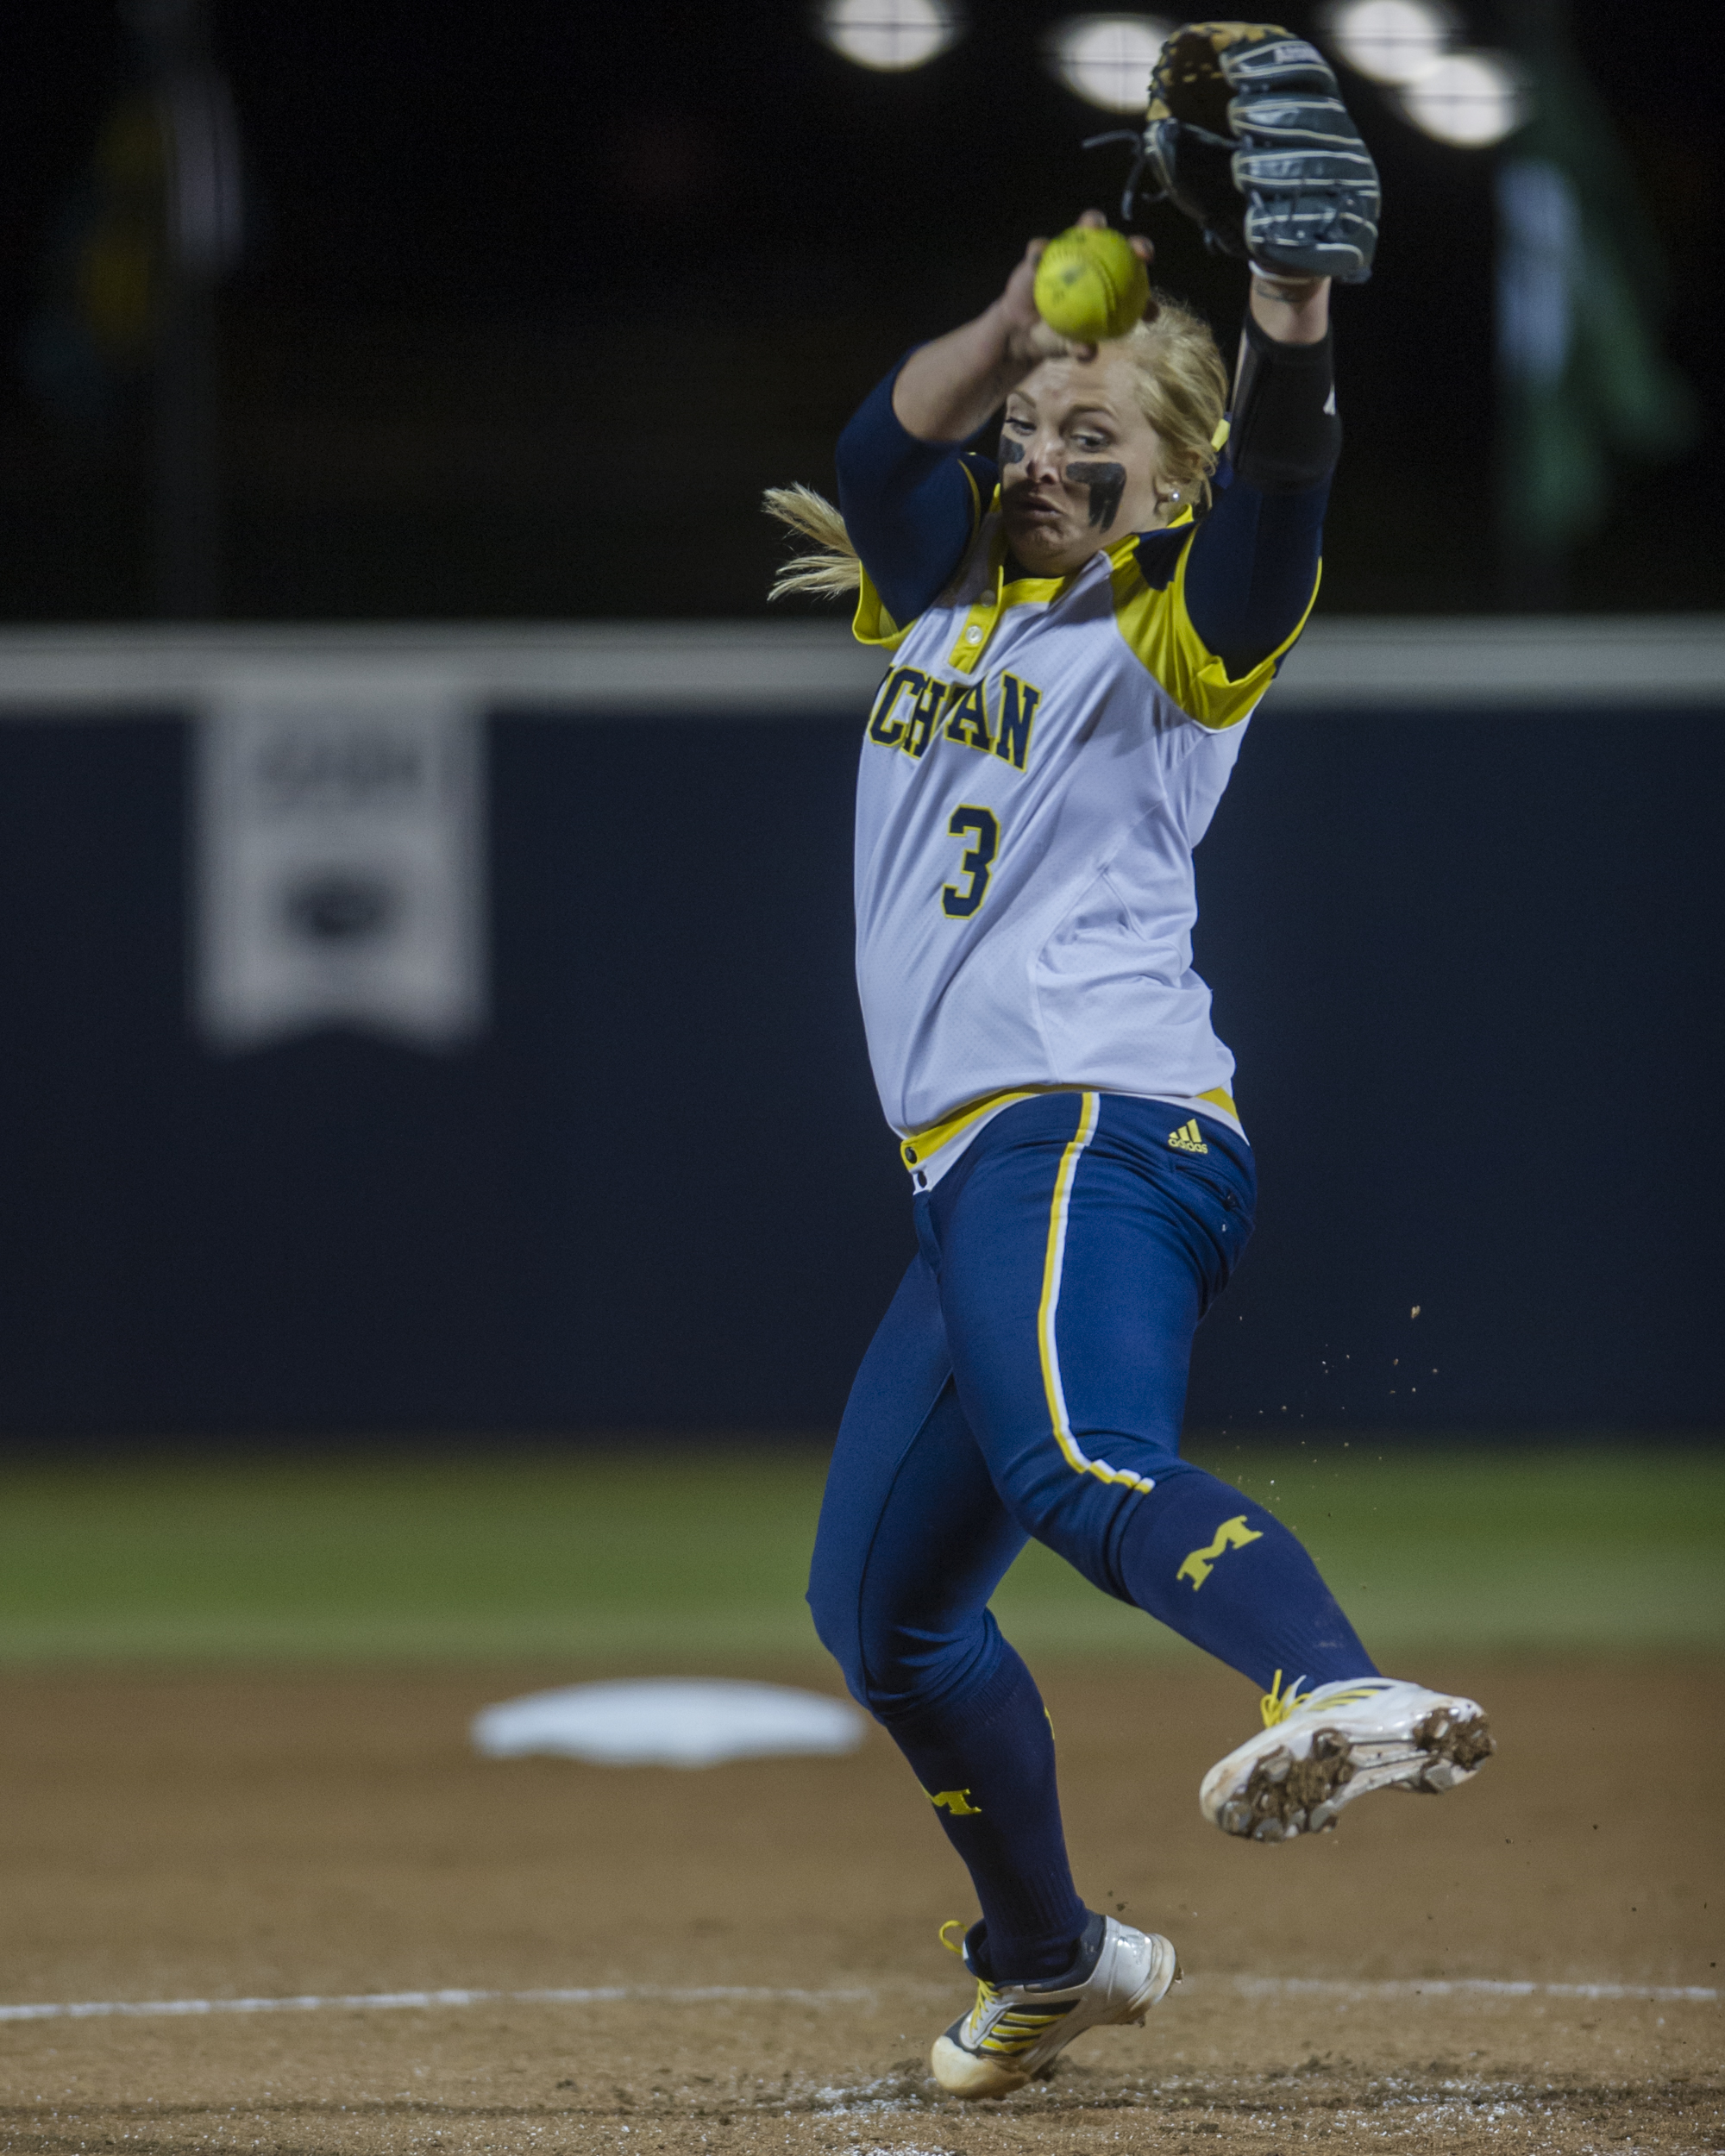 Michigan pitcher Megan Batsa winds up to send a pitch to home plate during the final game of the Big Ten Tournament against Minnesota at Beard Field on Saturday, May 14, 2016.